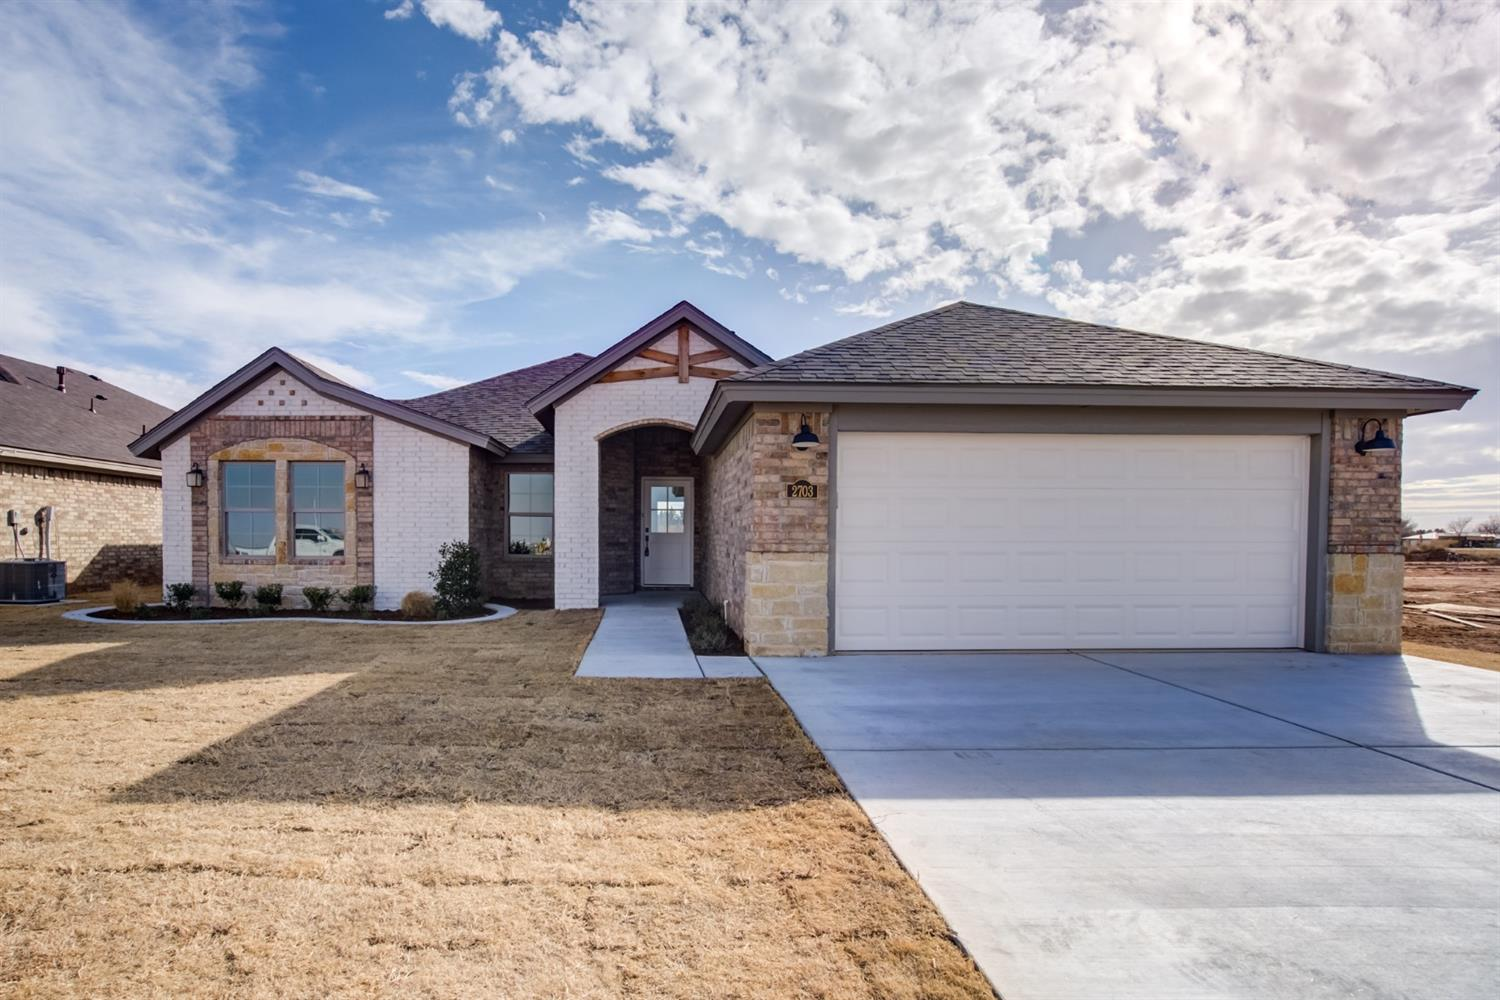 Sharkey Custom Homes, Inc. does it again! You will love the quality and affordability of this Sharkey Home in Viridian Estates.  A new housing addition in the Lubbock-Cooper school district. This home will boast of beautiful ceilings, custom-like kitchen, beautiful bathroom finishes and so much more!  This house is just under construction beginning in Julyof 2019 and scheduled to be completed in January of 2020.  Give me a call for more information!      Veridian is located south of FM 1585 and east of Indiana Avenue. Along with single family luxury homes, this subdivision is managed by a Homeowners Association with minimal yearly dues and is ideal for all age ranges with a neighborhood swimming pool and green space for outdoor fun!